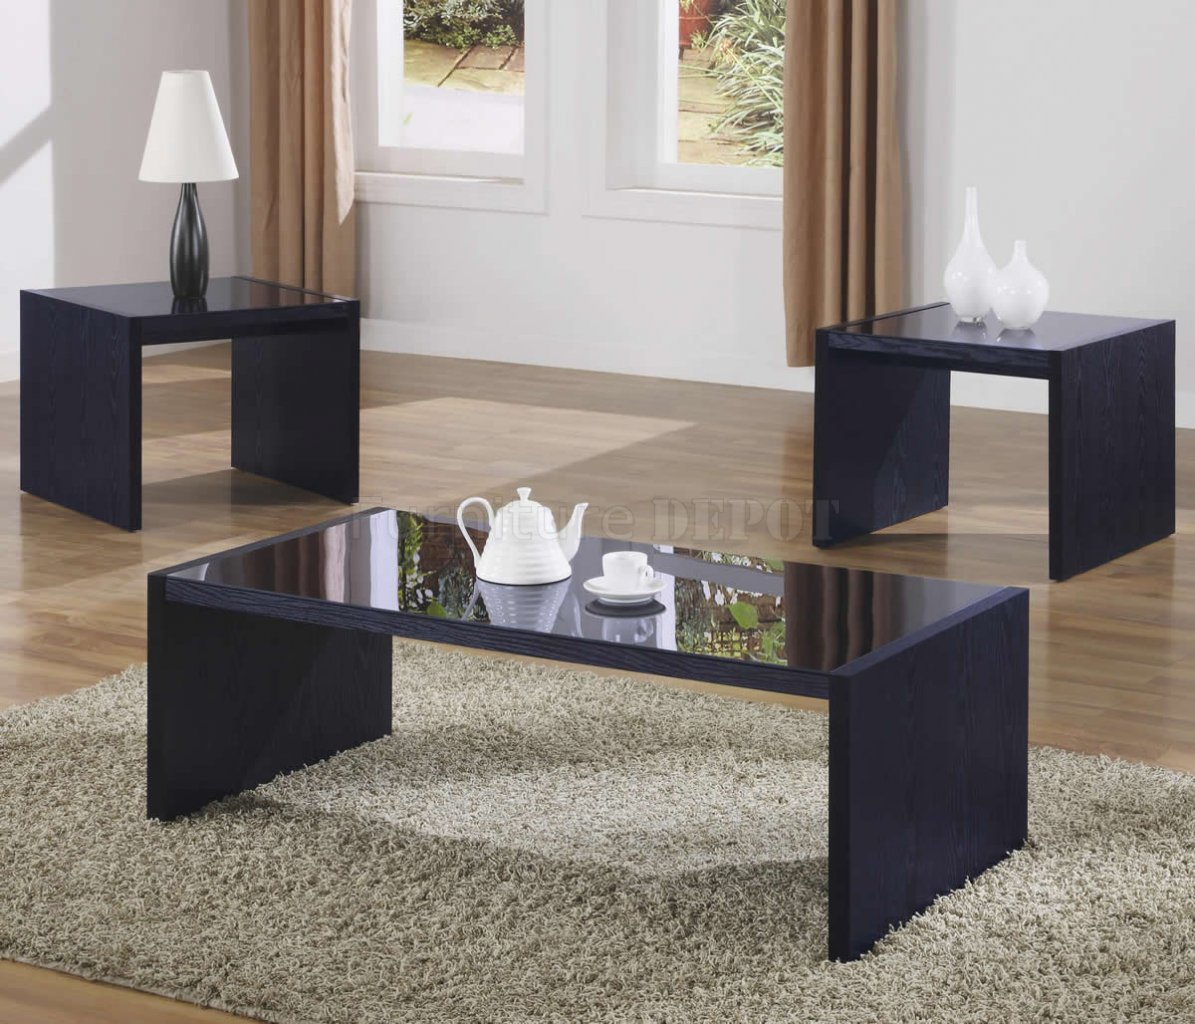 Modern Black Coffee Table Sets Use The Largest As A Coffee Table Or Group Black Modern Coffee Tables Them For A Graphic Display (Image 7 of 8)